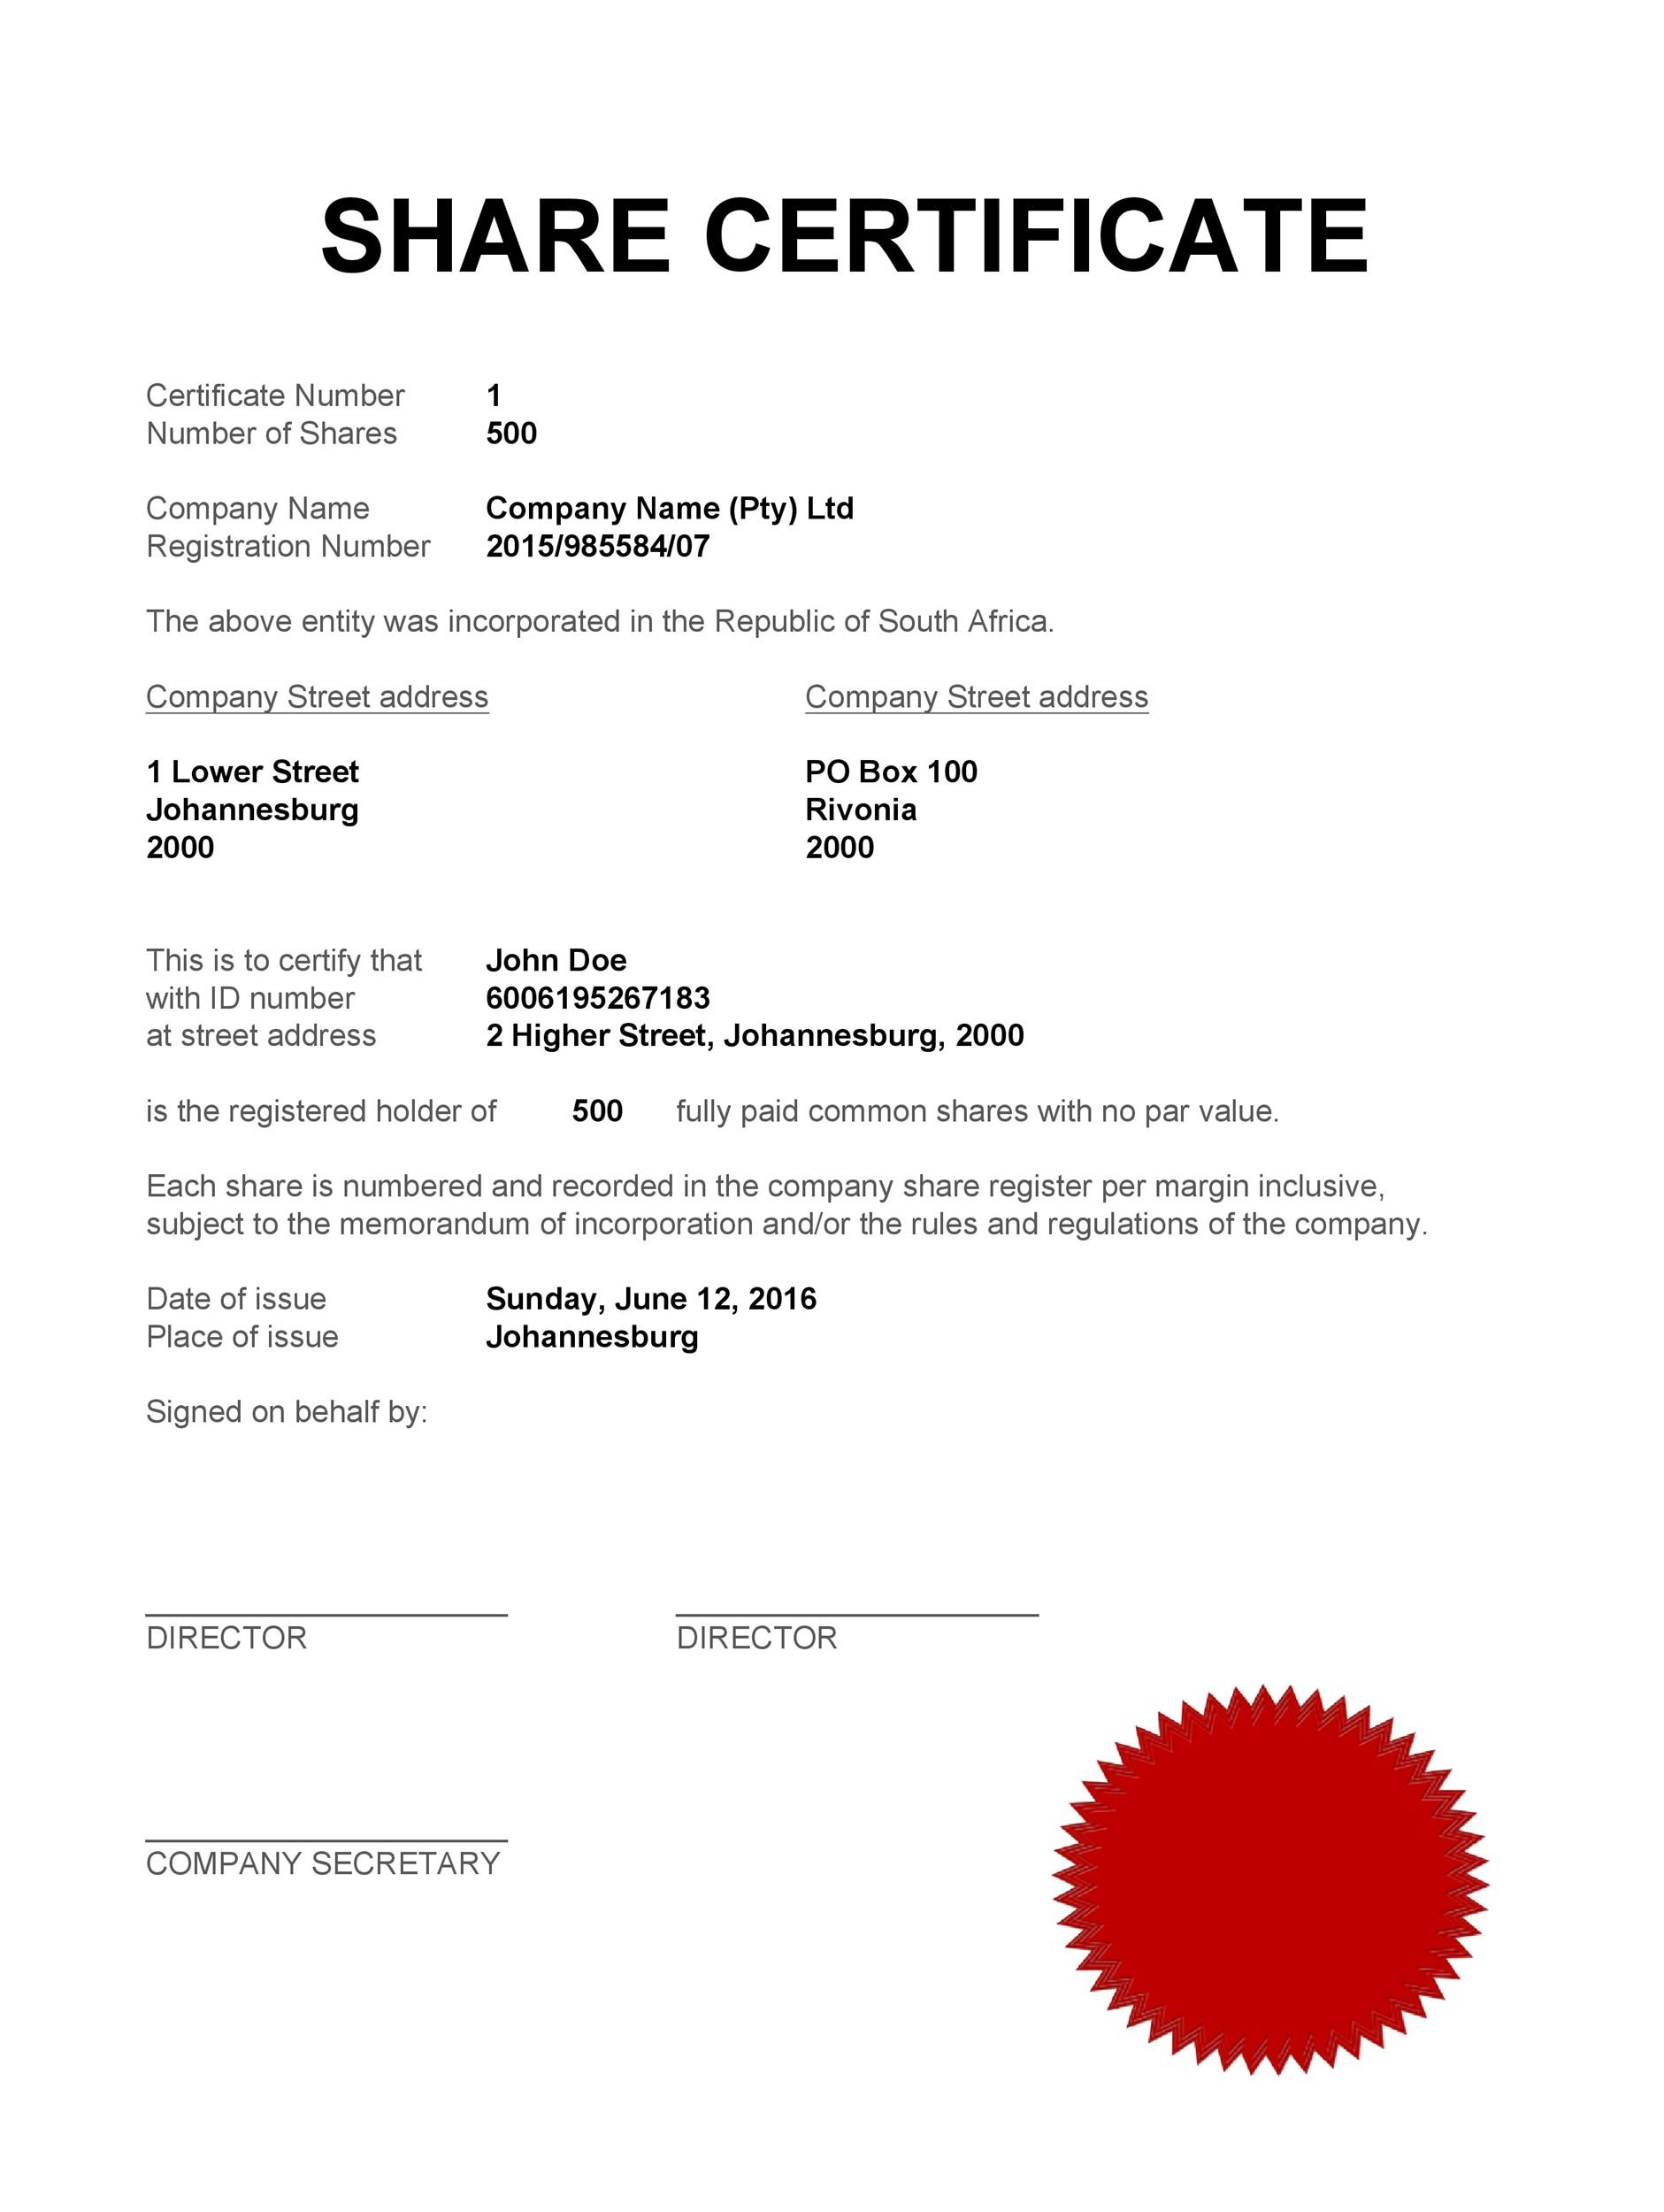 Share Certificates Template Ukrandiffusion